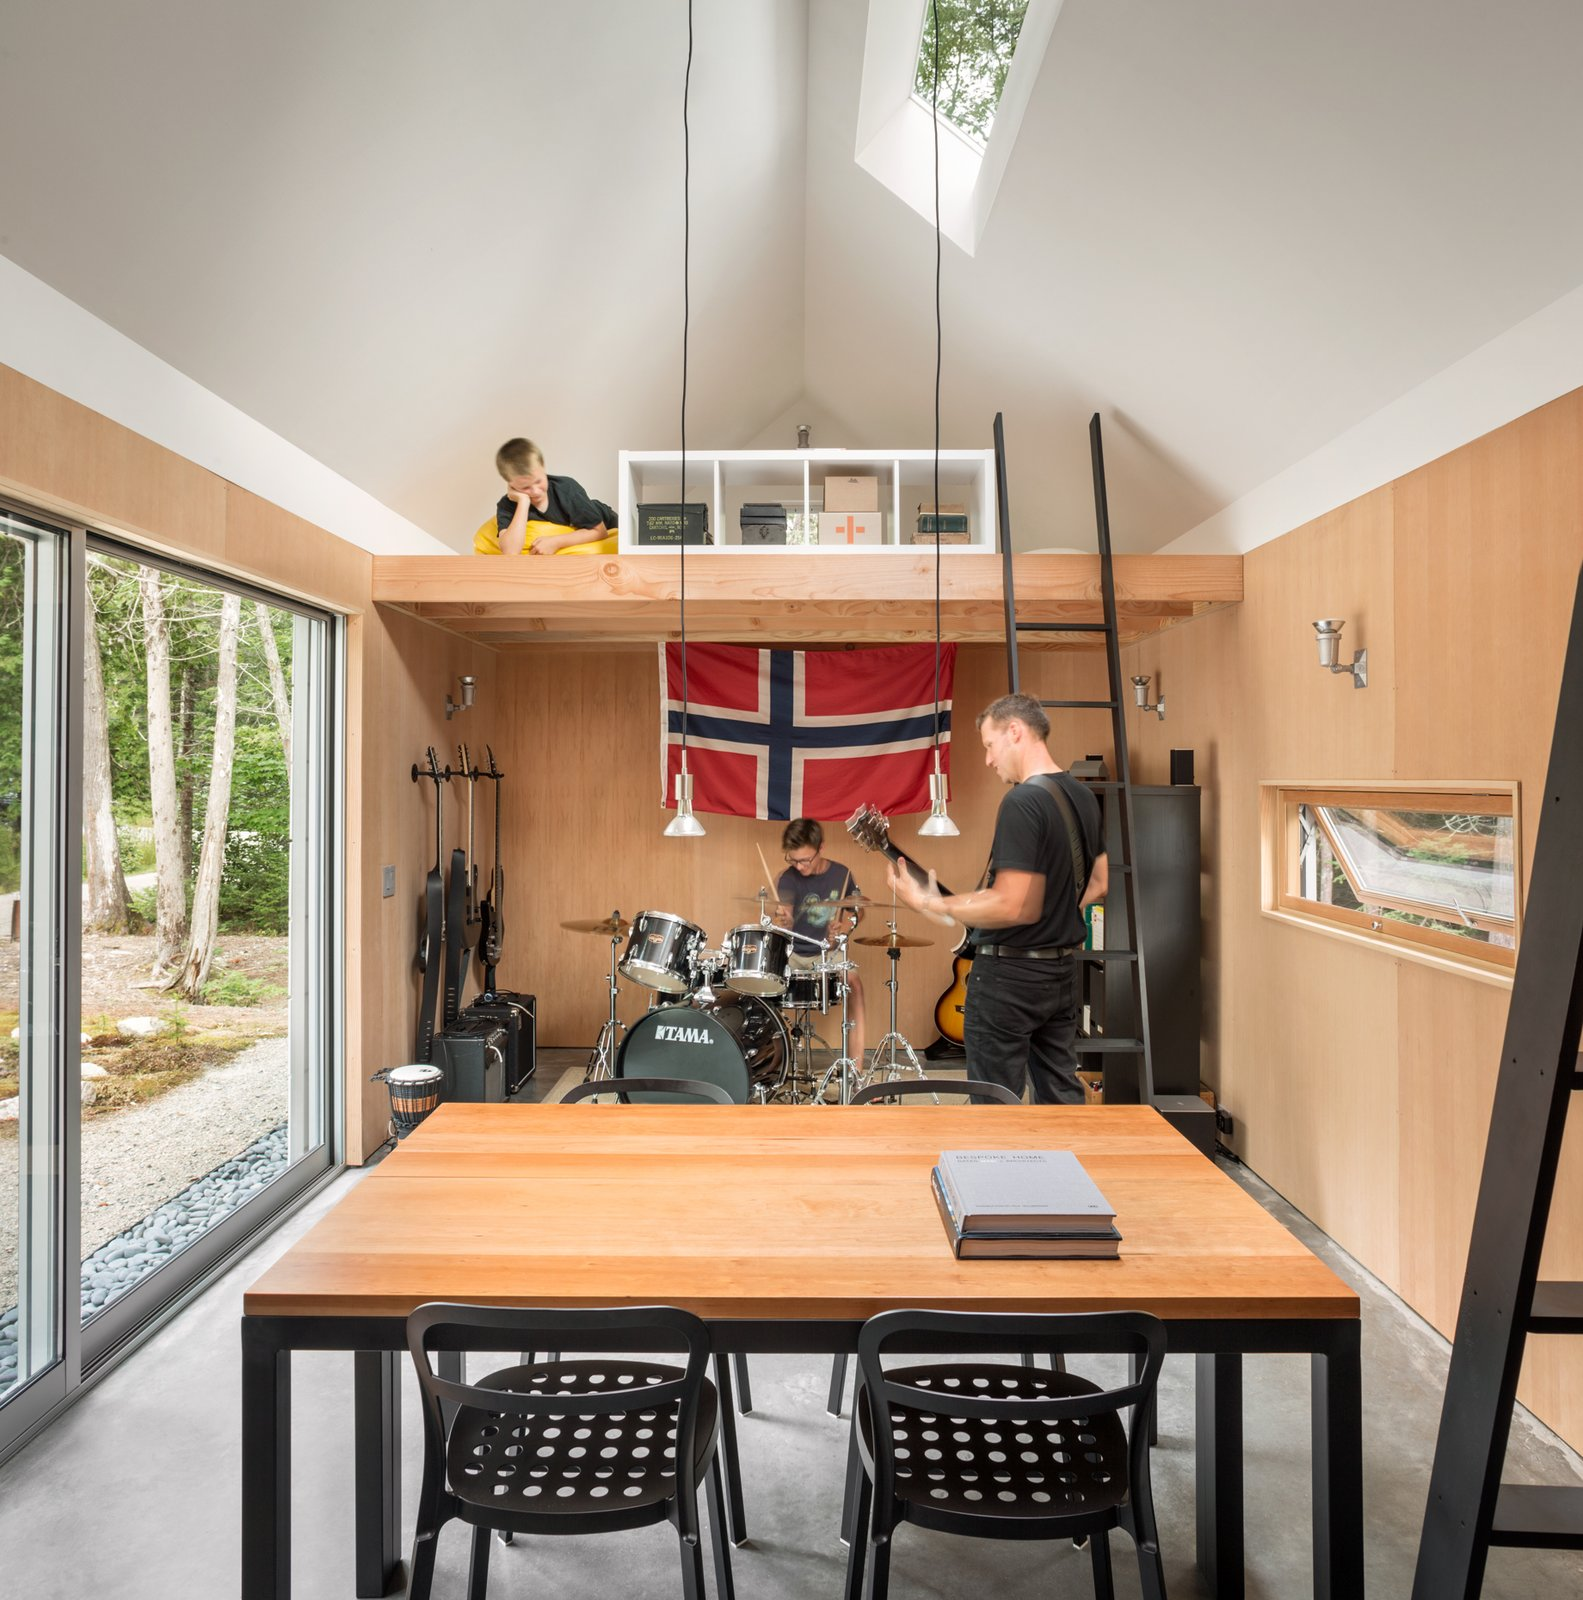 Kids Room, Playroom Room Type, Family Room Room Type, Storage, Bookcase, Chair, Teen Age, Concrete Floor, Pre-Teen Age, and Neutral Gender Rehearsal Space  The Long Studio by 30X40 Design Workshop